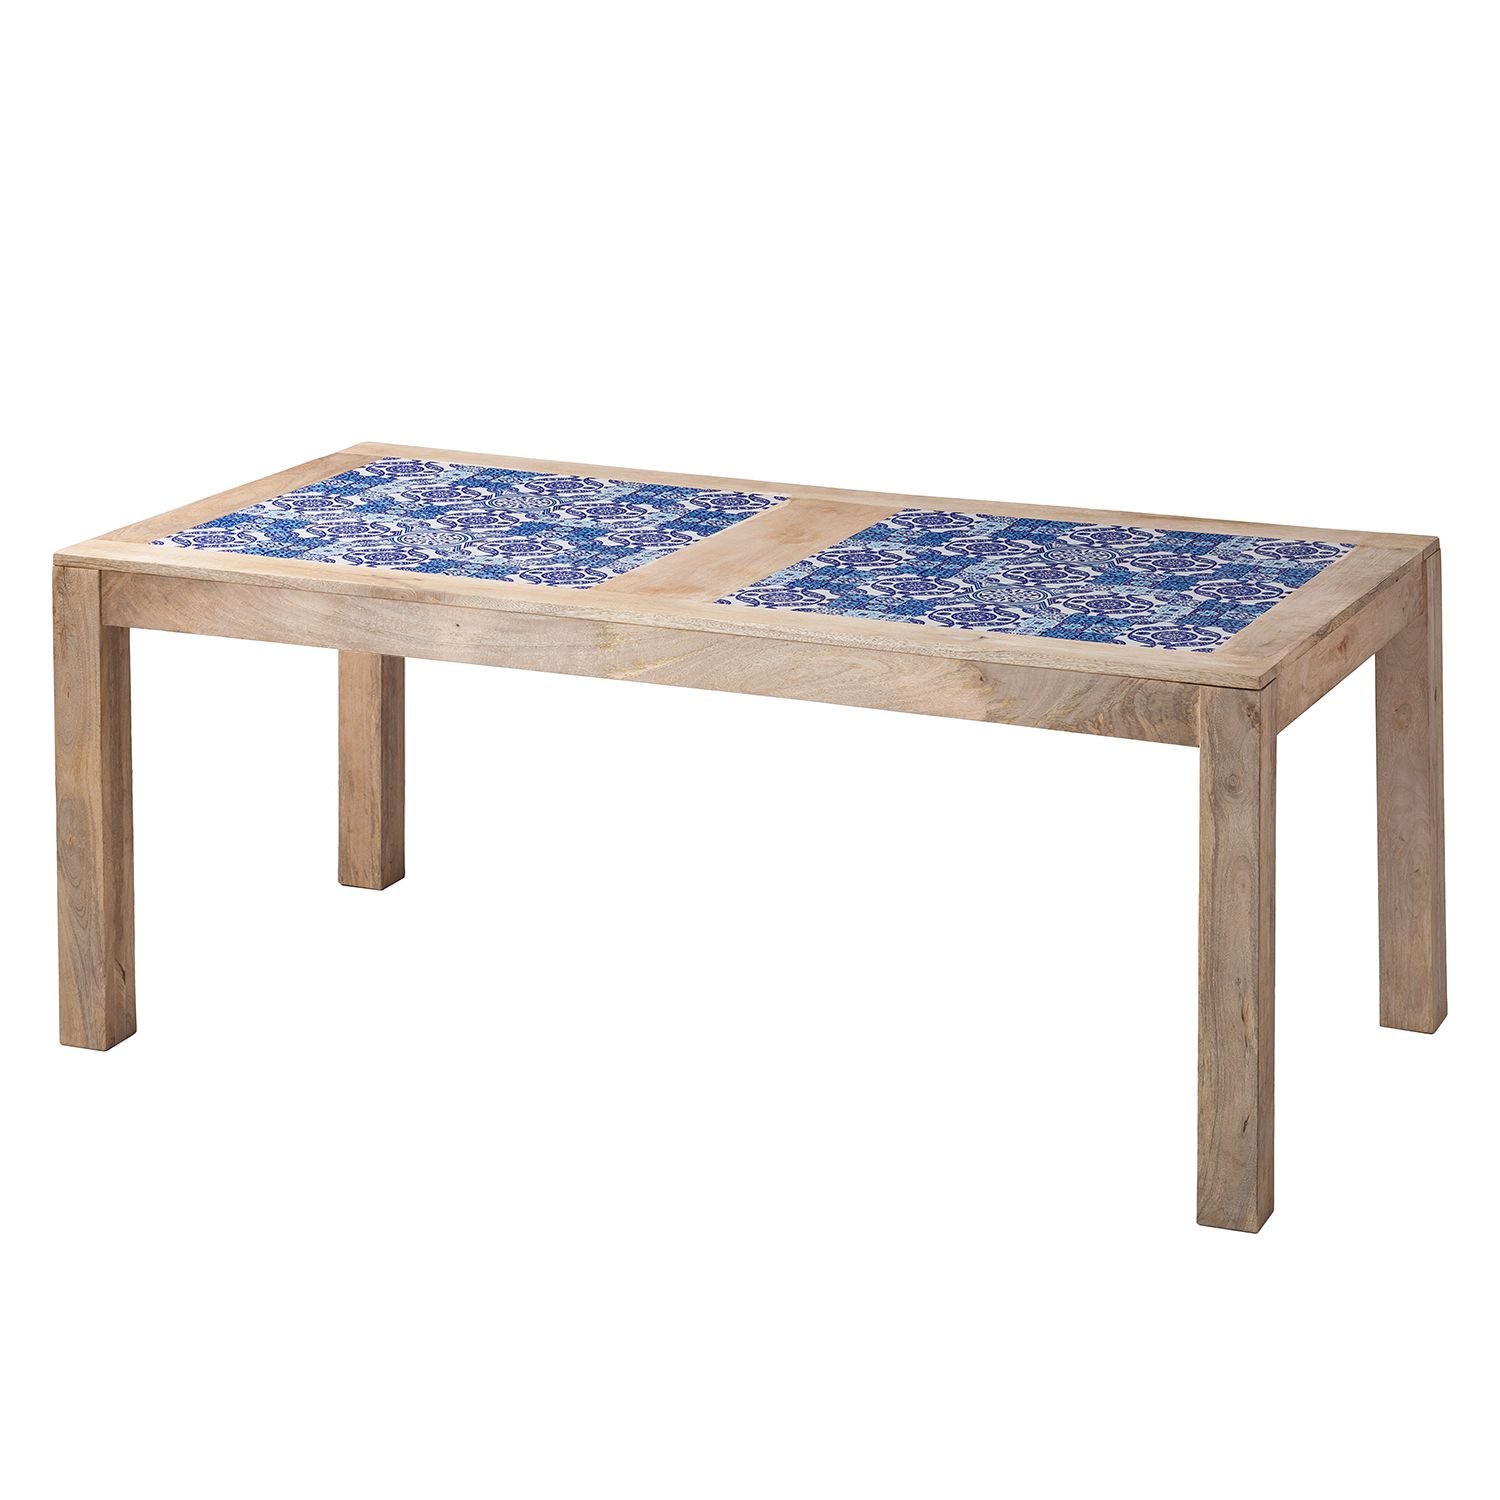 Table à manger Ibiza - Manguier massif / Céramique - Manguier / Bleu - 190 x 95 cm, ars manufacti